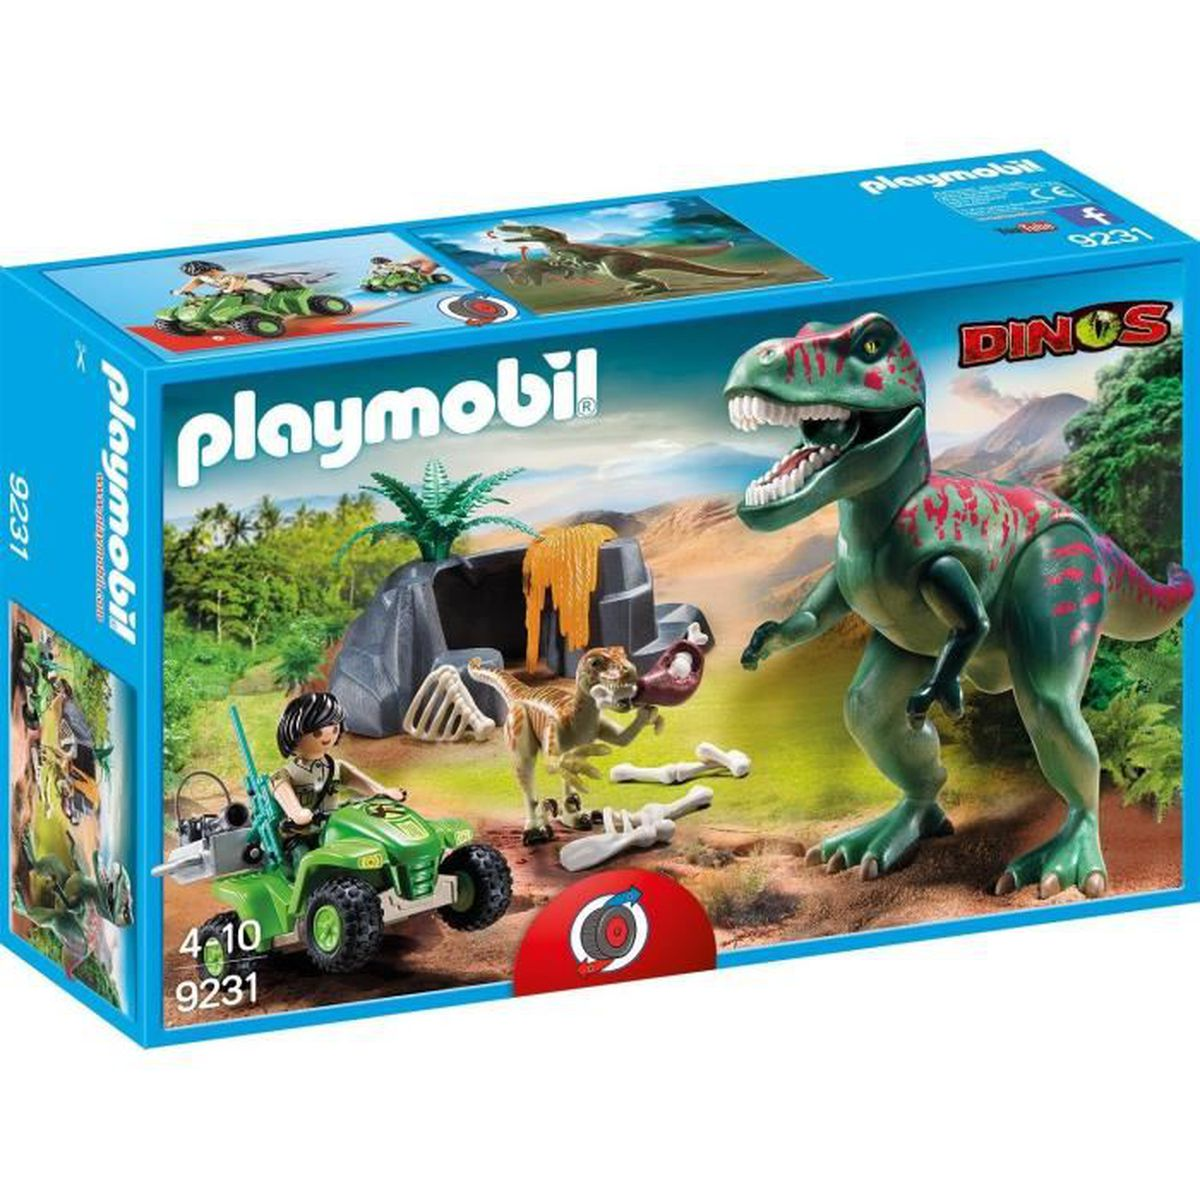 dinosaures playmobil achat vente jeux et jouets pas chers. Black Bedroom Furniture Sets. Home Design Ideas